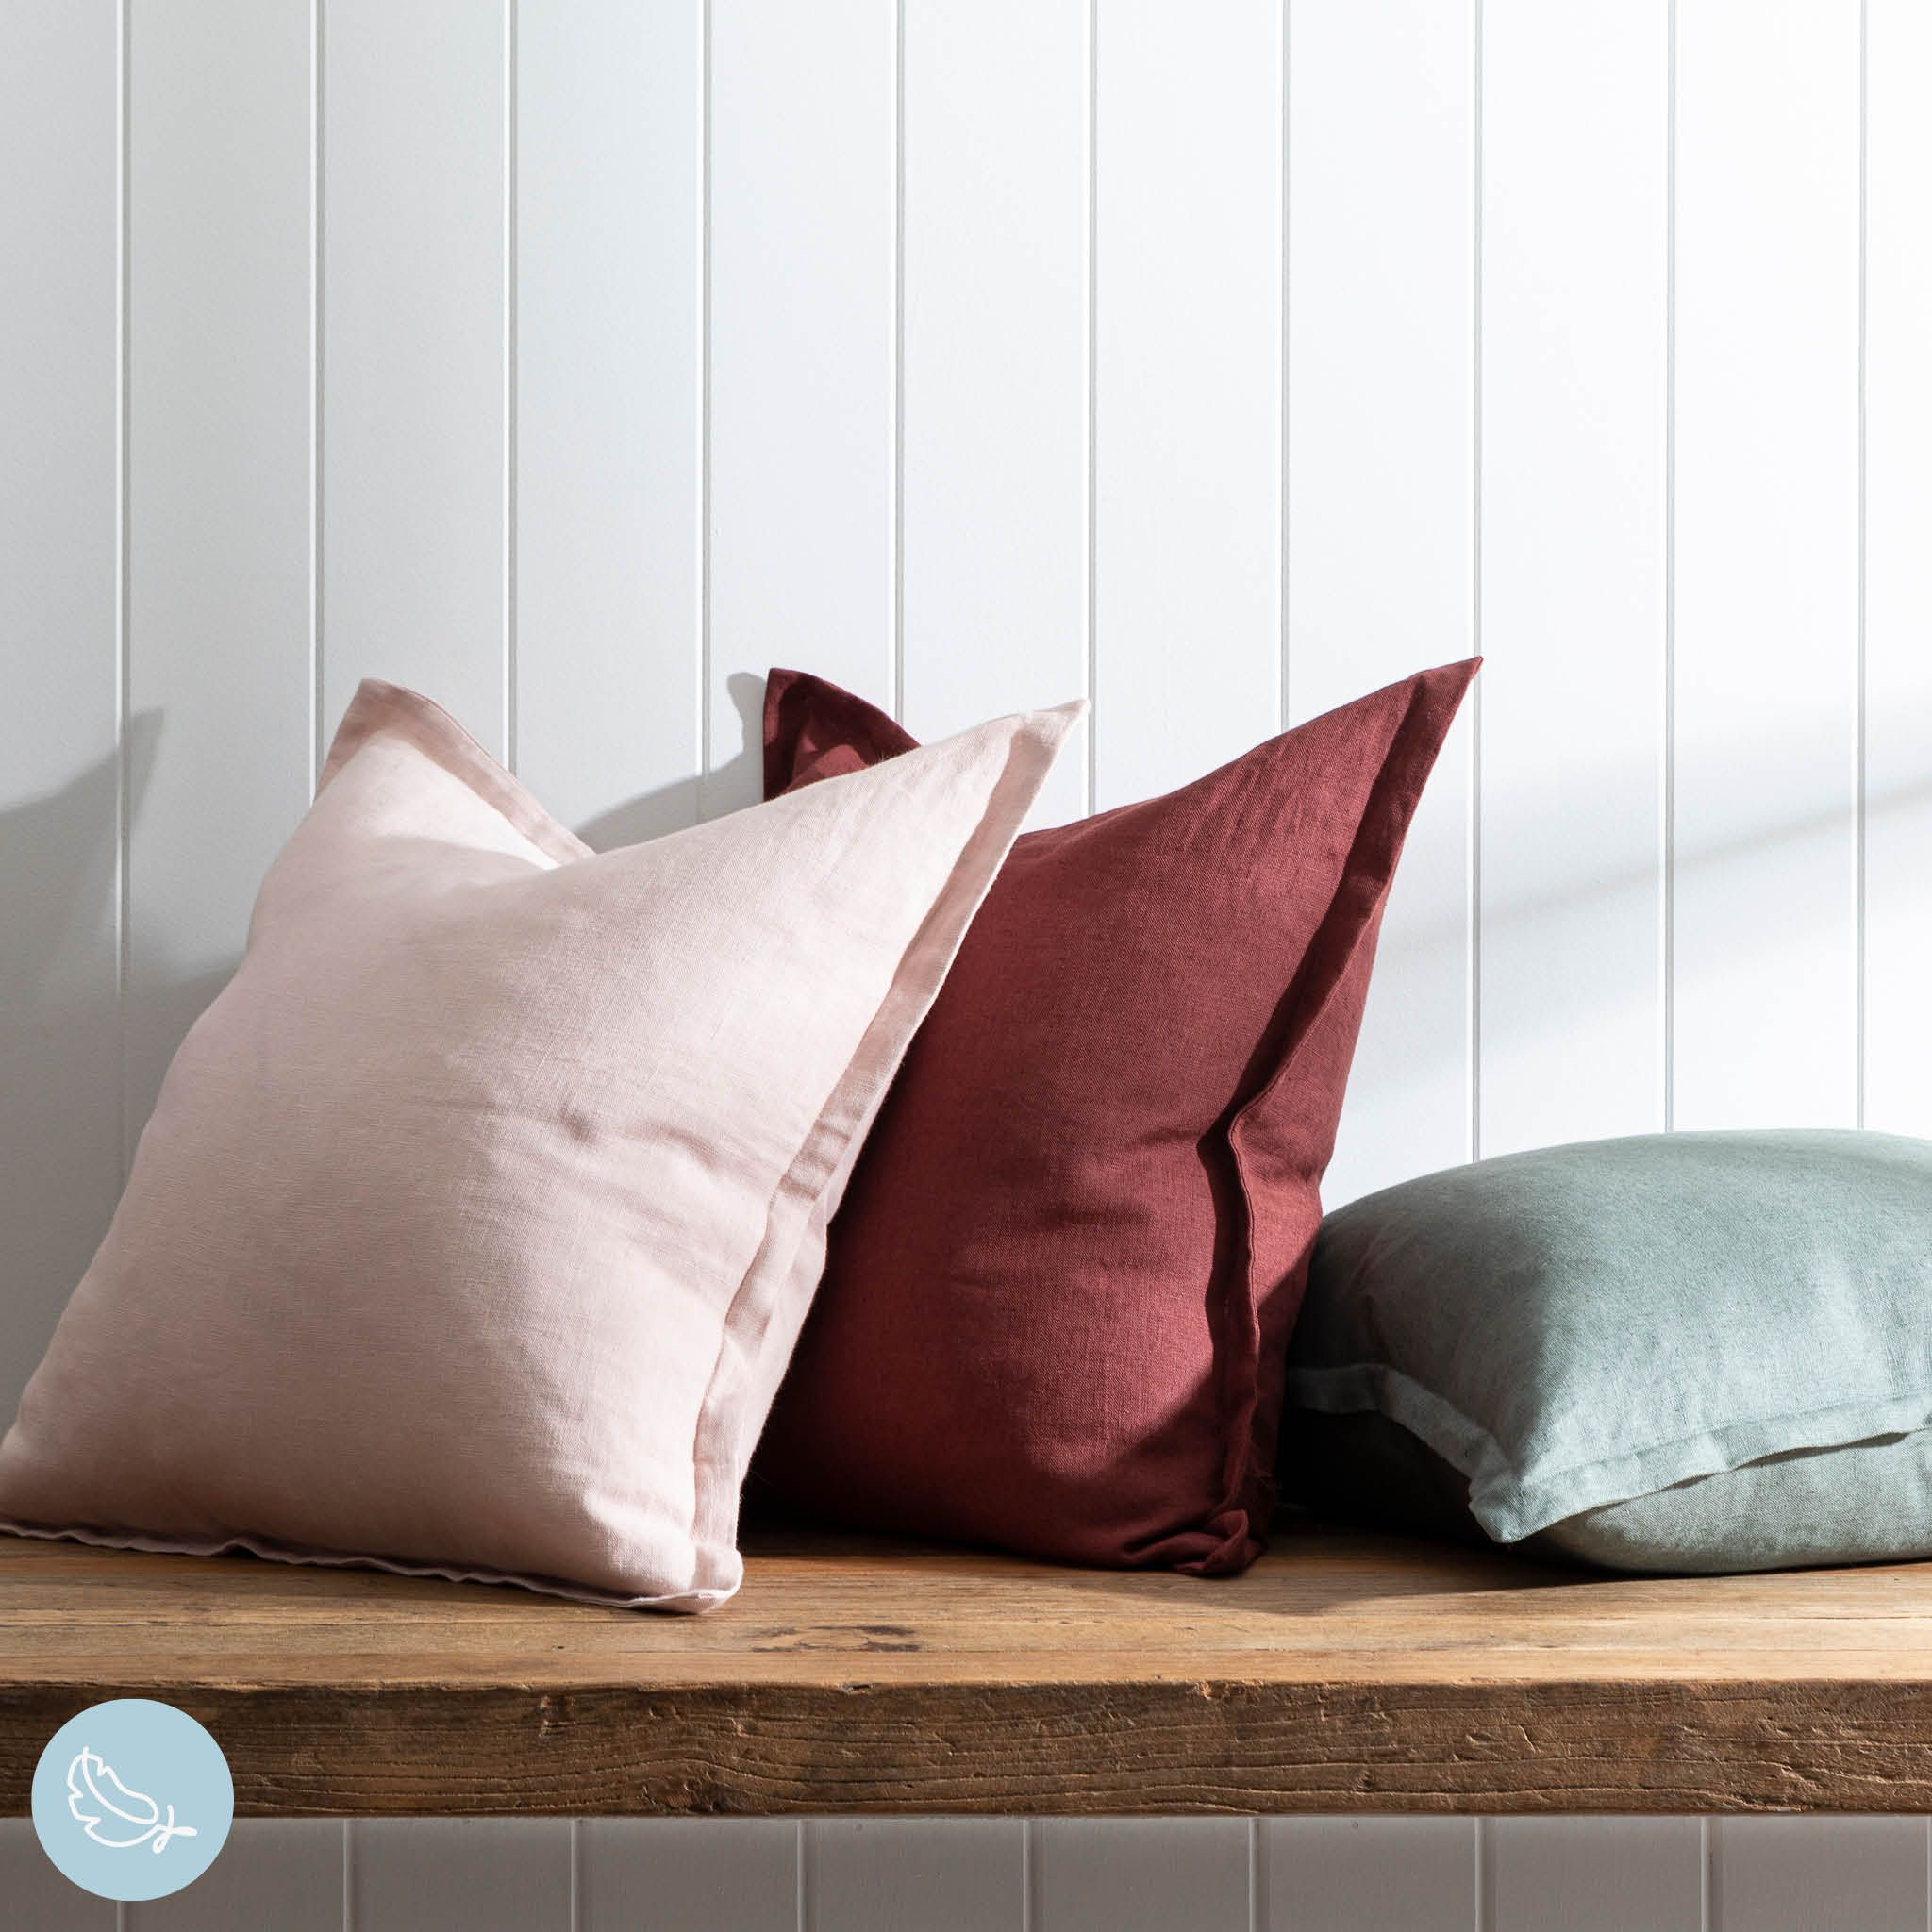 Your favourite cushions this season are guaranteed to be our stunning Sahara Linen Cushions. Plush and luxurious, these are a brilliant option for your home! #PillowTalkAustralia #ForTheLoveOfComfort #Homestyling #cushions #livingstyle #homestyle #homedecor